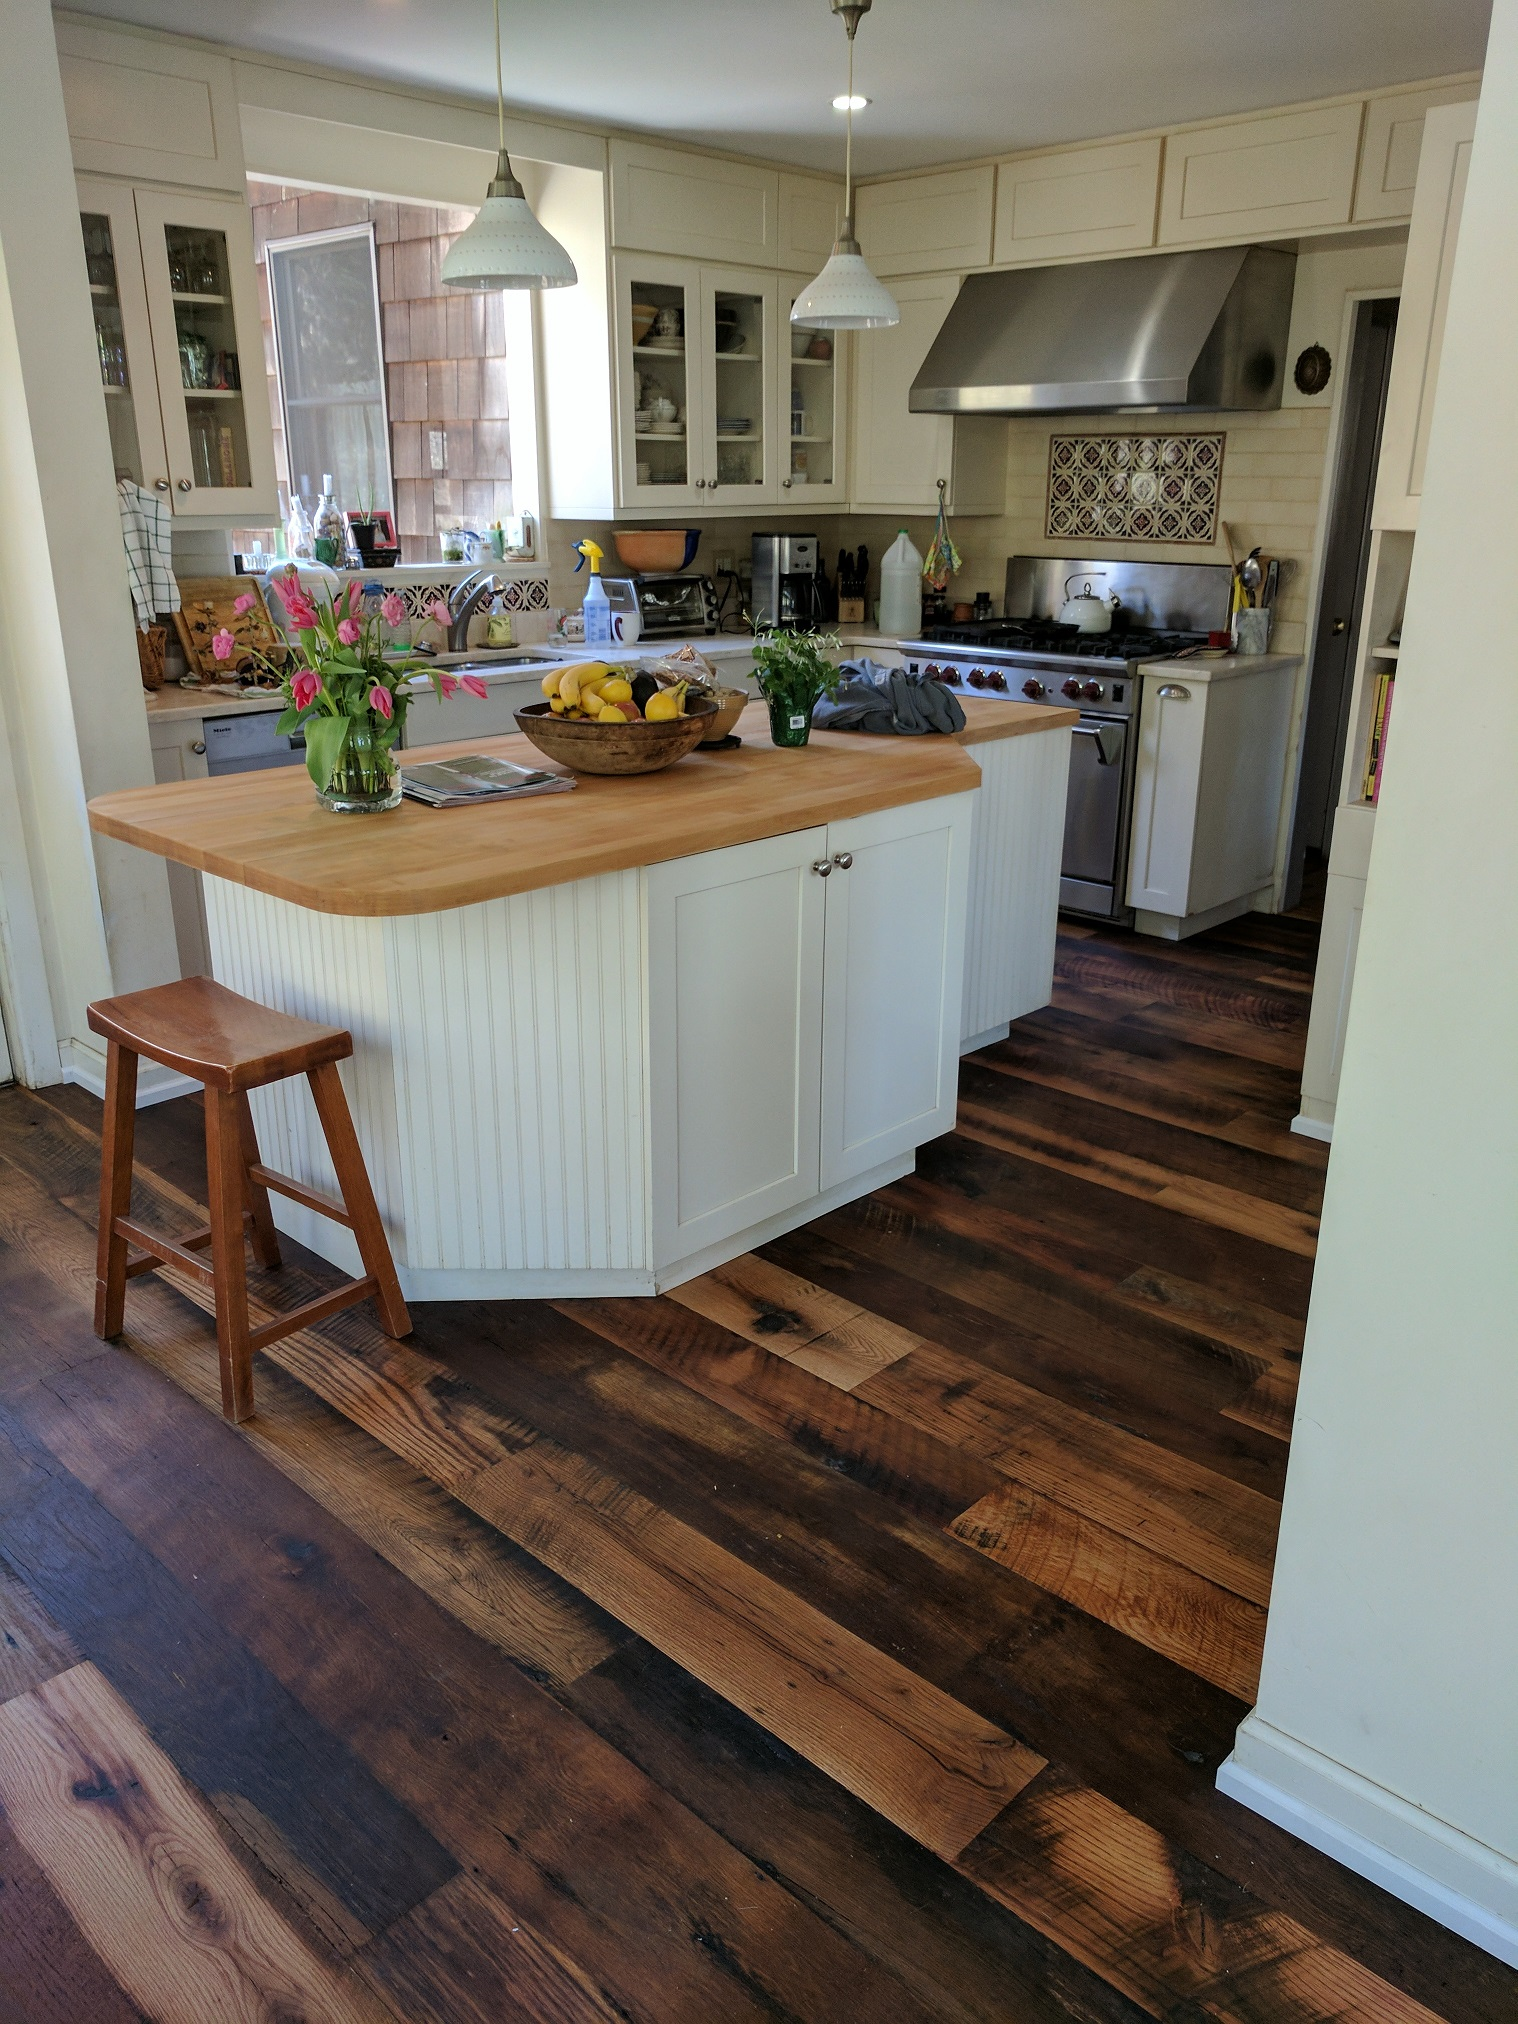 reclaimed-job-kitchen-island-1-50.jpg